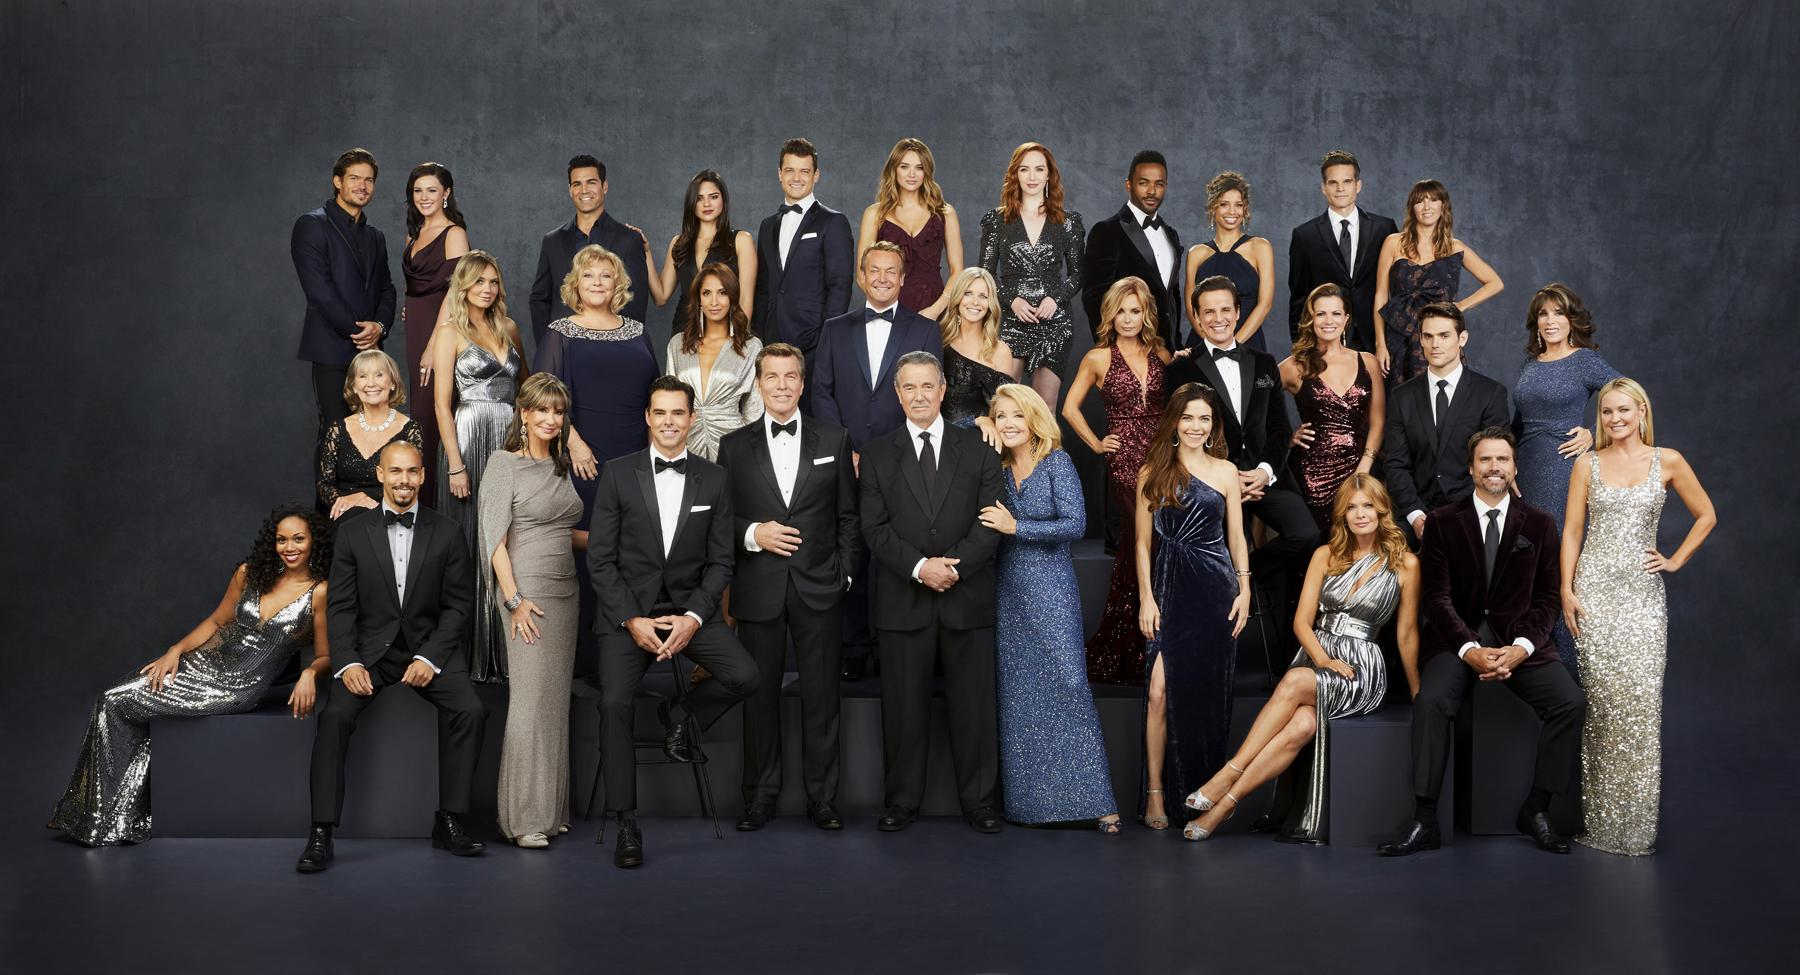 The Young and the Restless to resume production in July